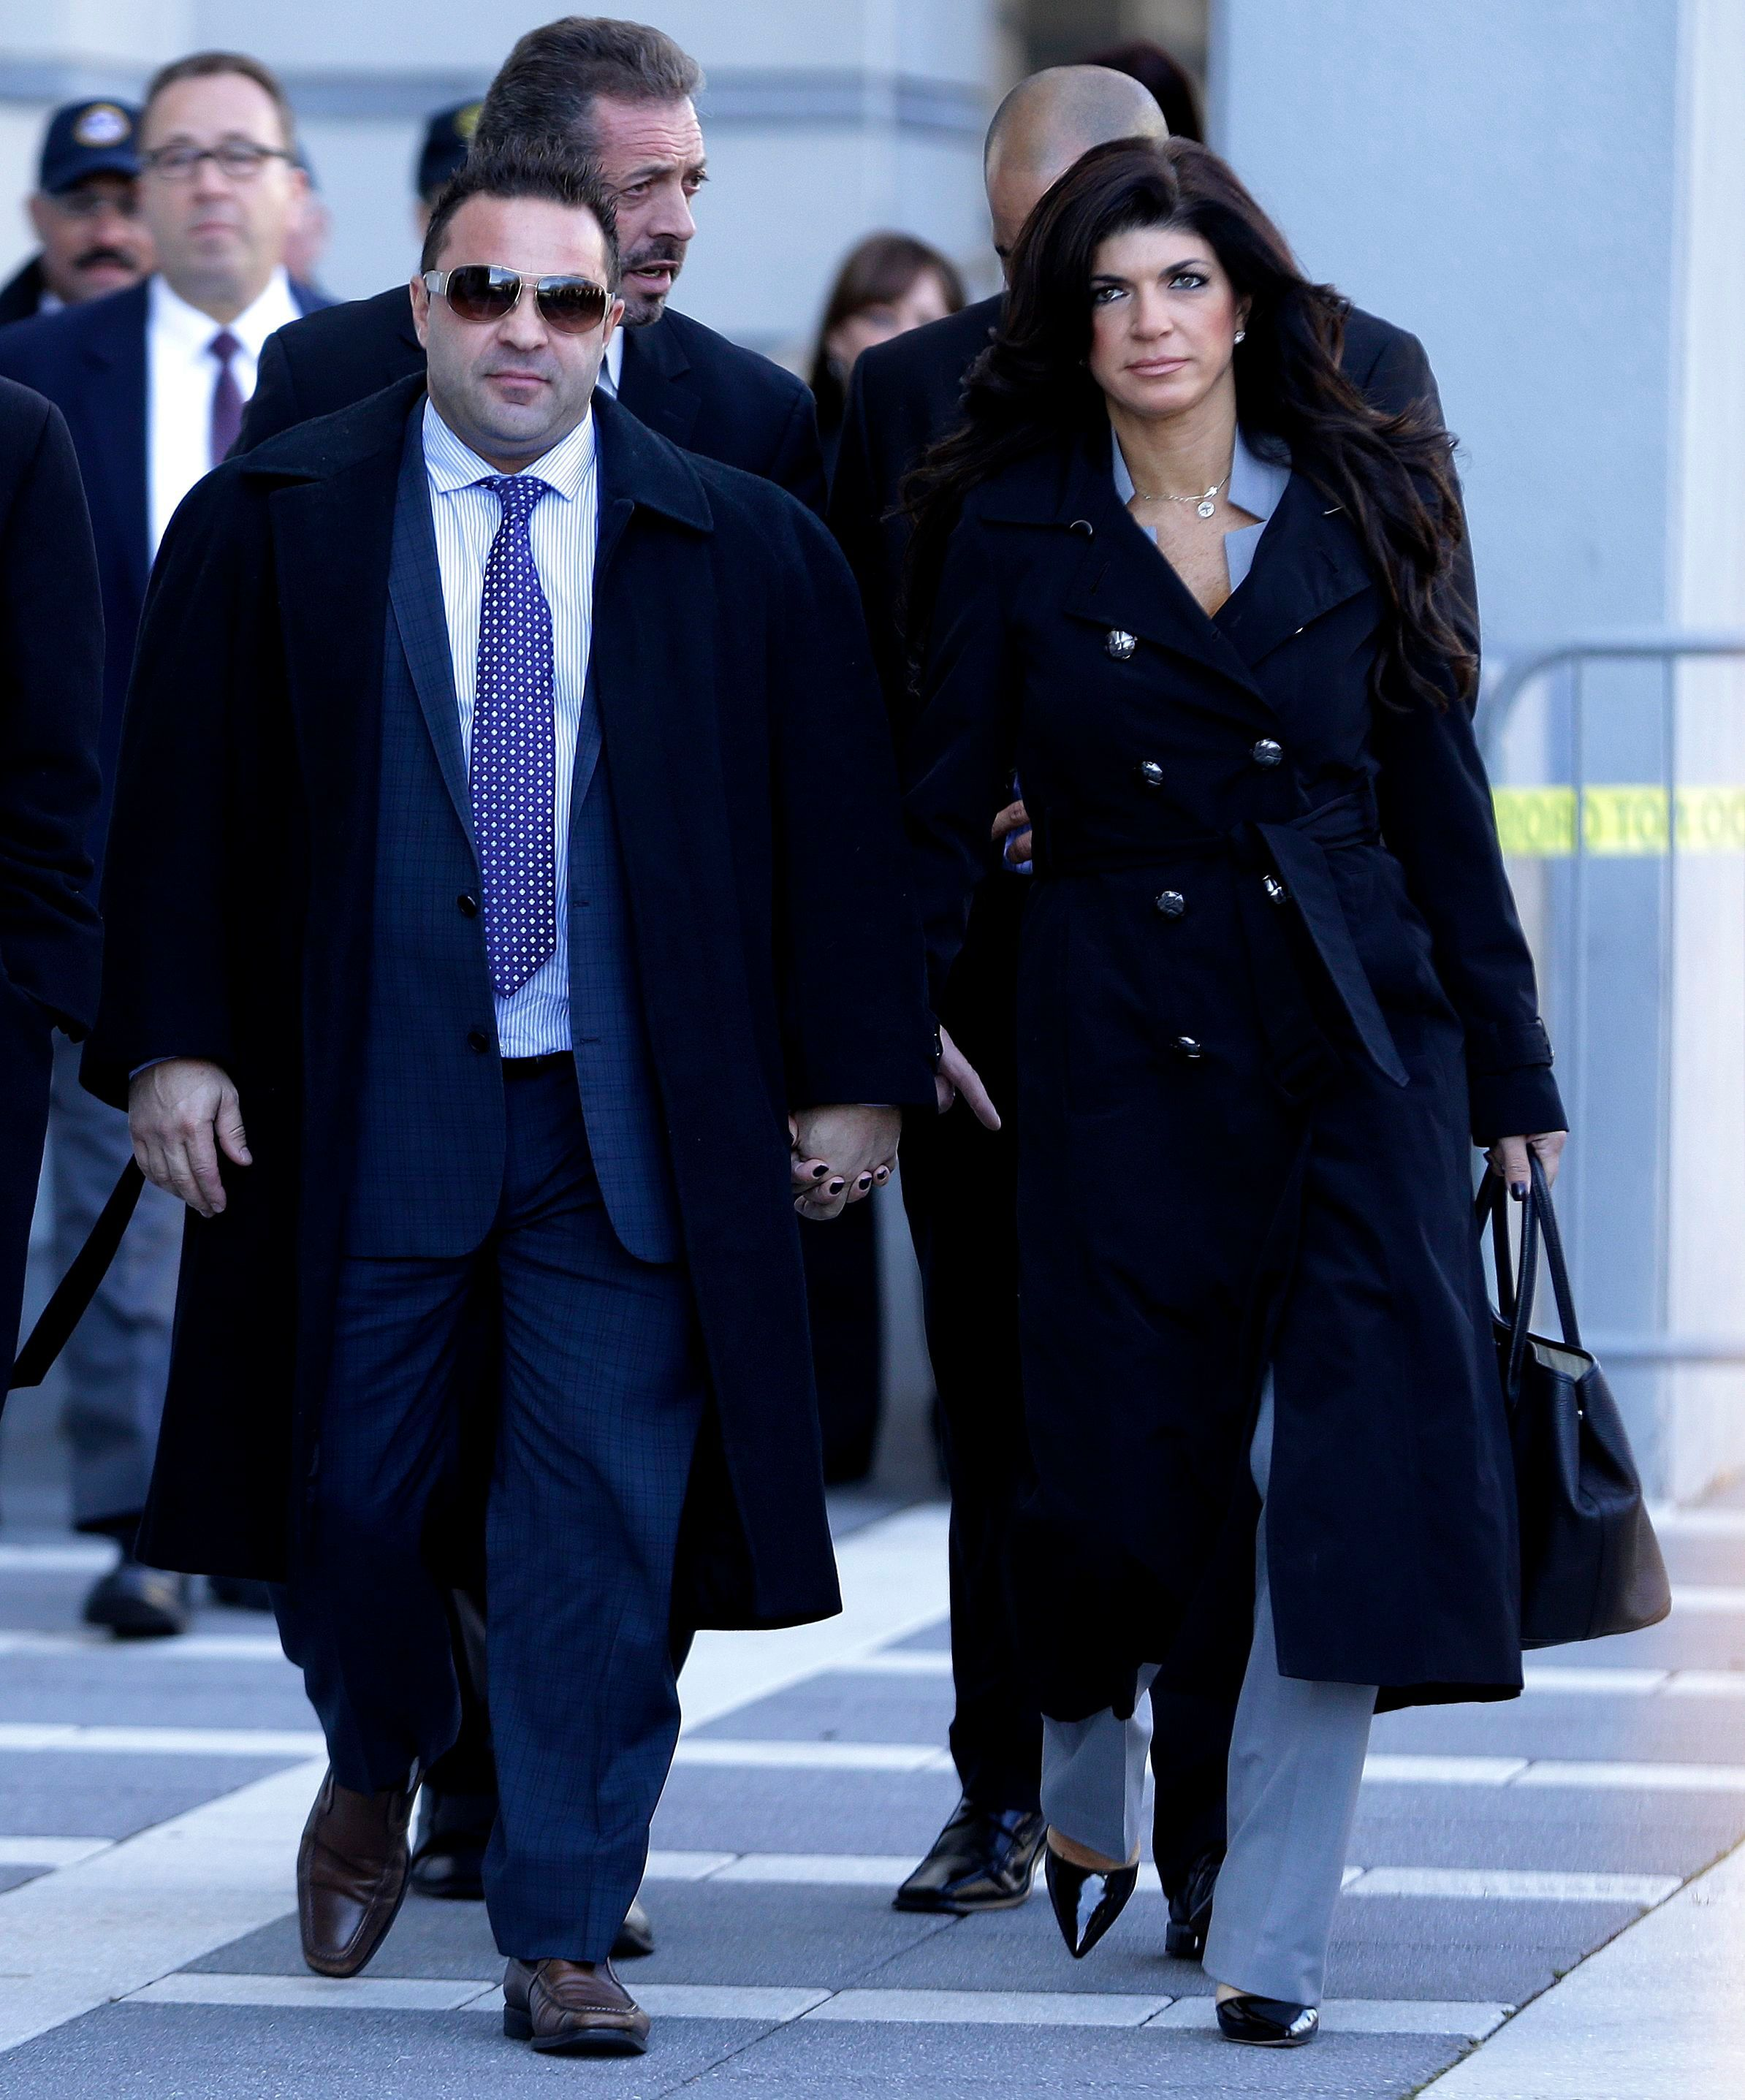 Joe Giudice and Teresa Giudice walk out of Martin Luther King, Jr. Courthouse in Newark, New Jersey,  on Nov. 20, 2013.